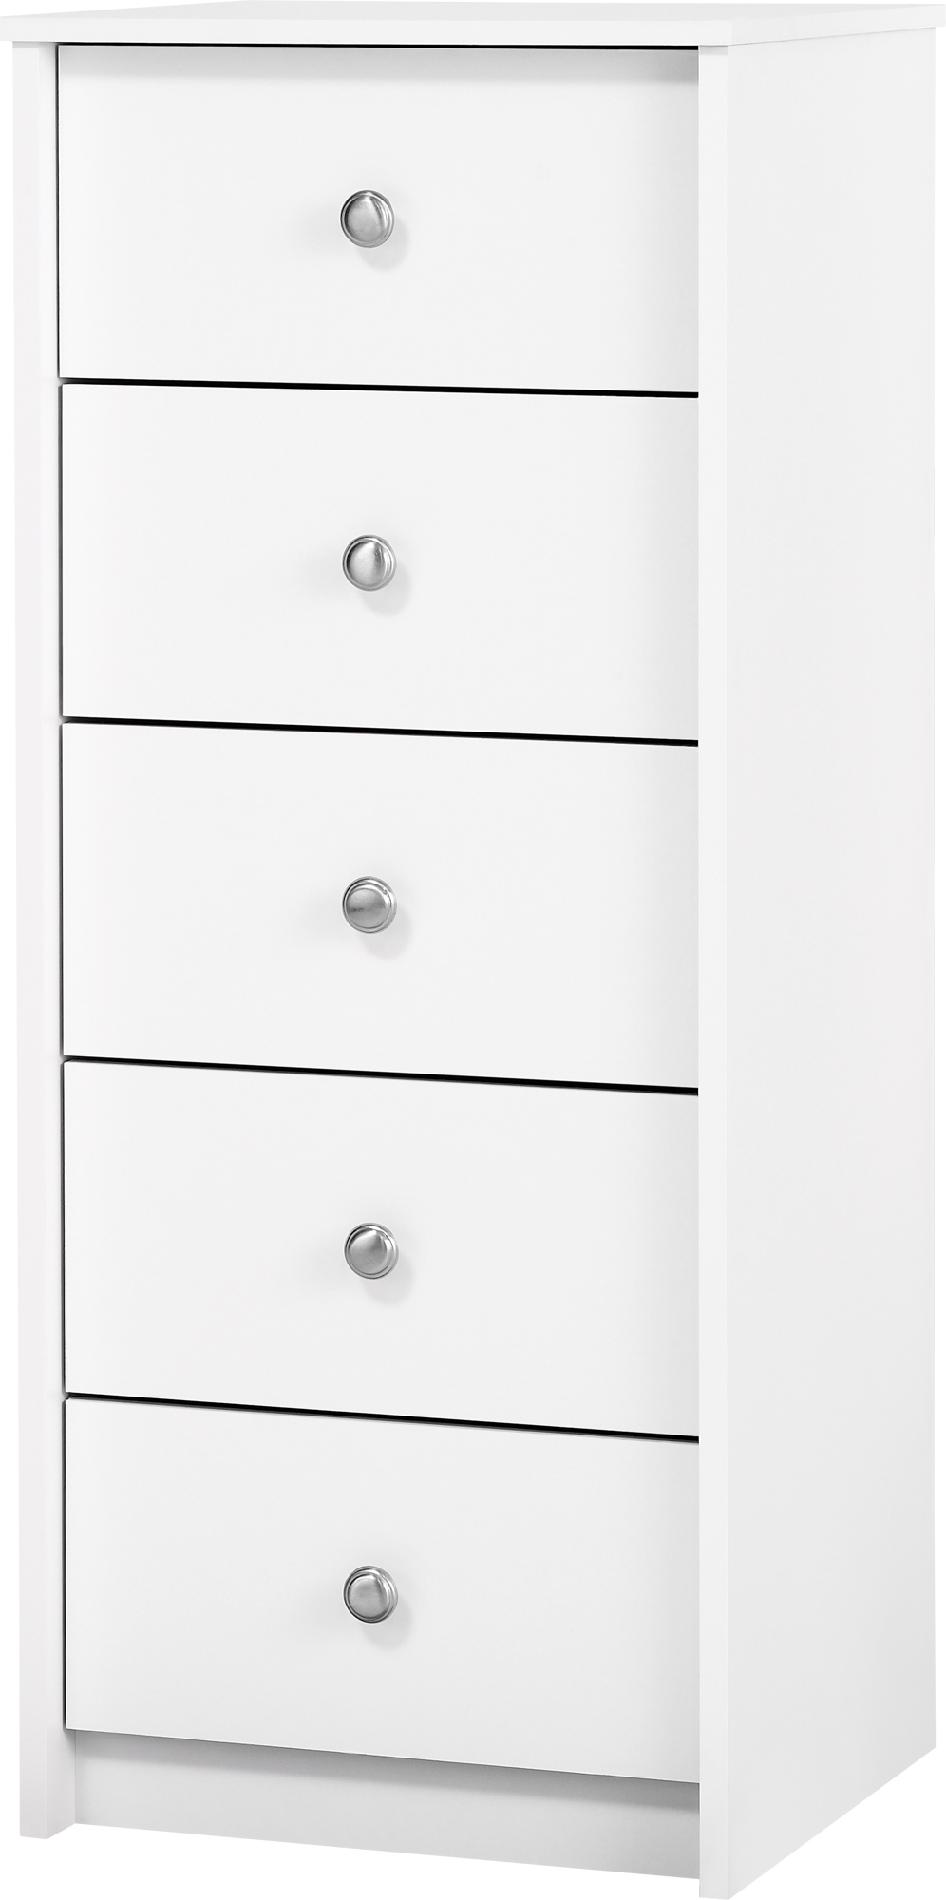 Belmont 5 Drawer Lingerie Chest - White